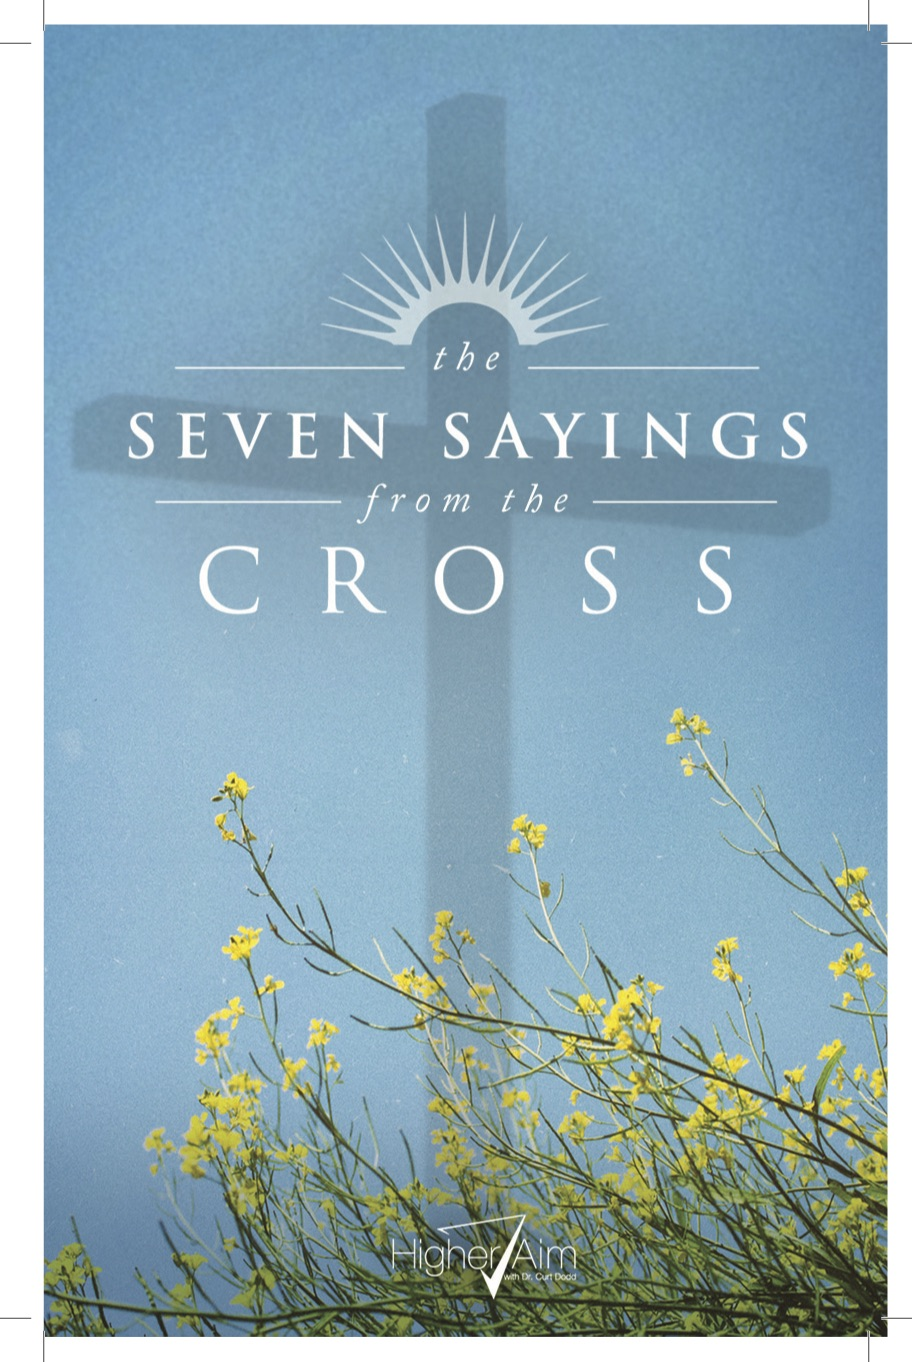 The 7 Sayings From The Cross booklet